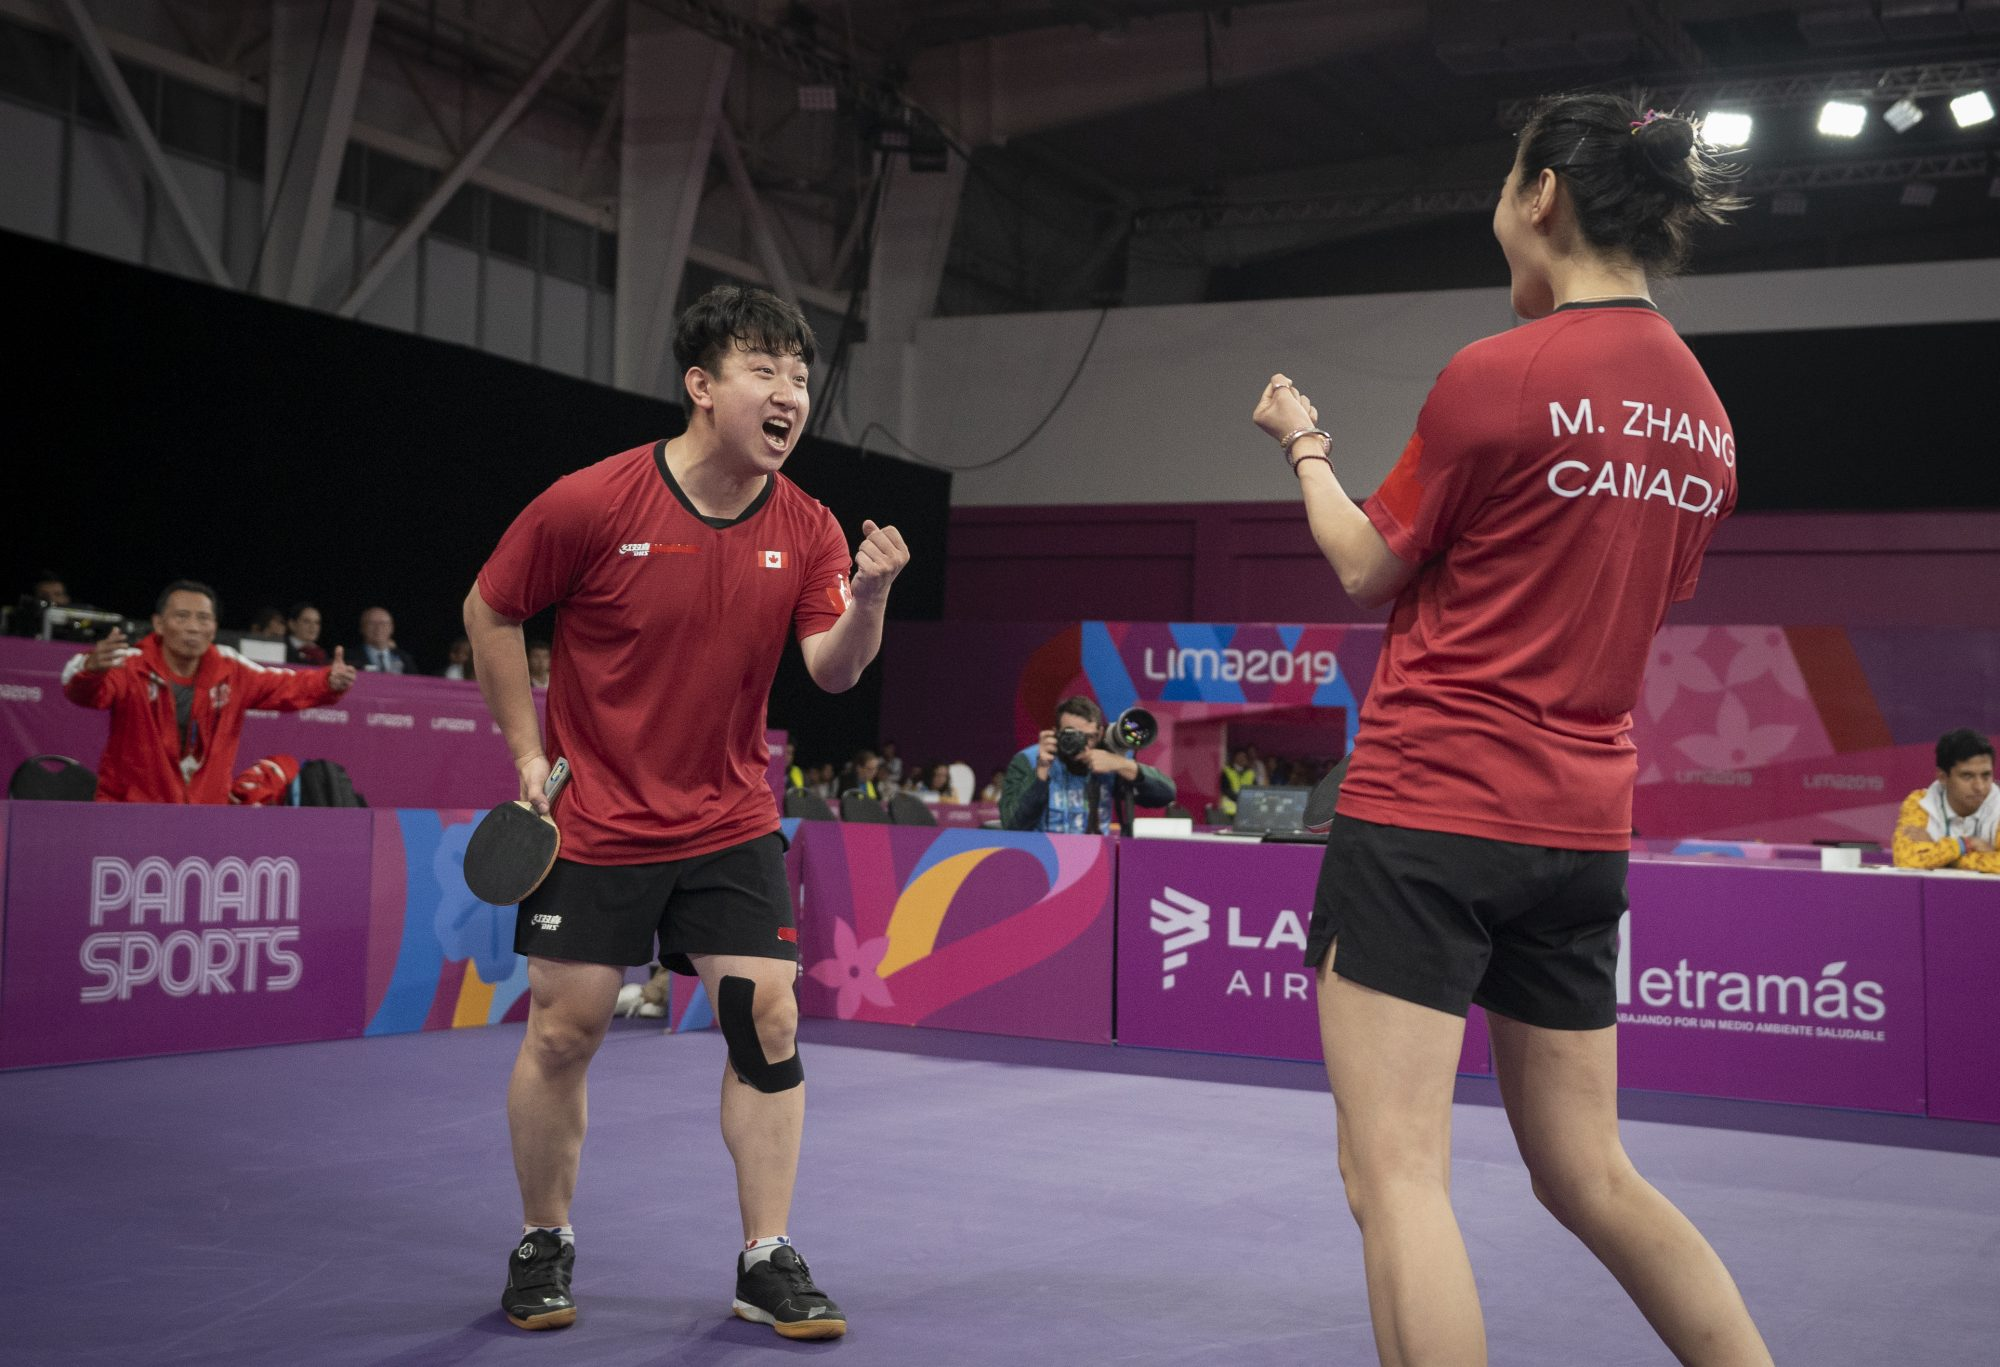 two athletes celebrate a win